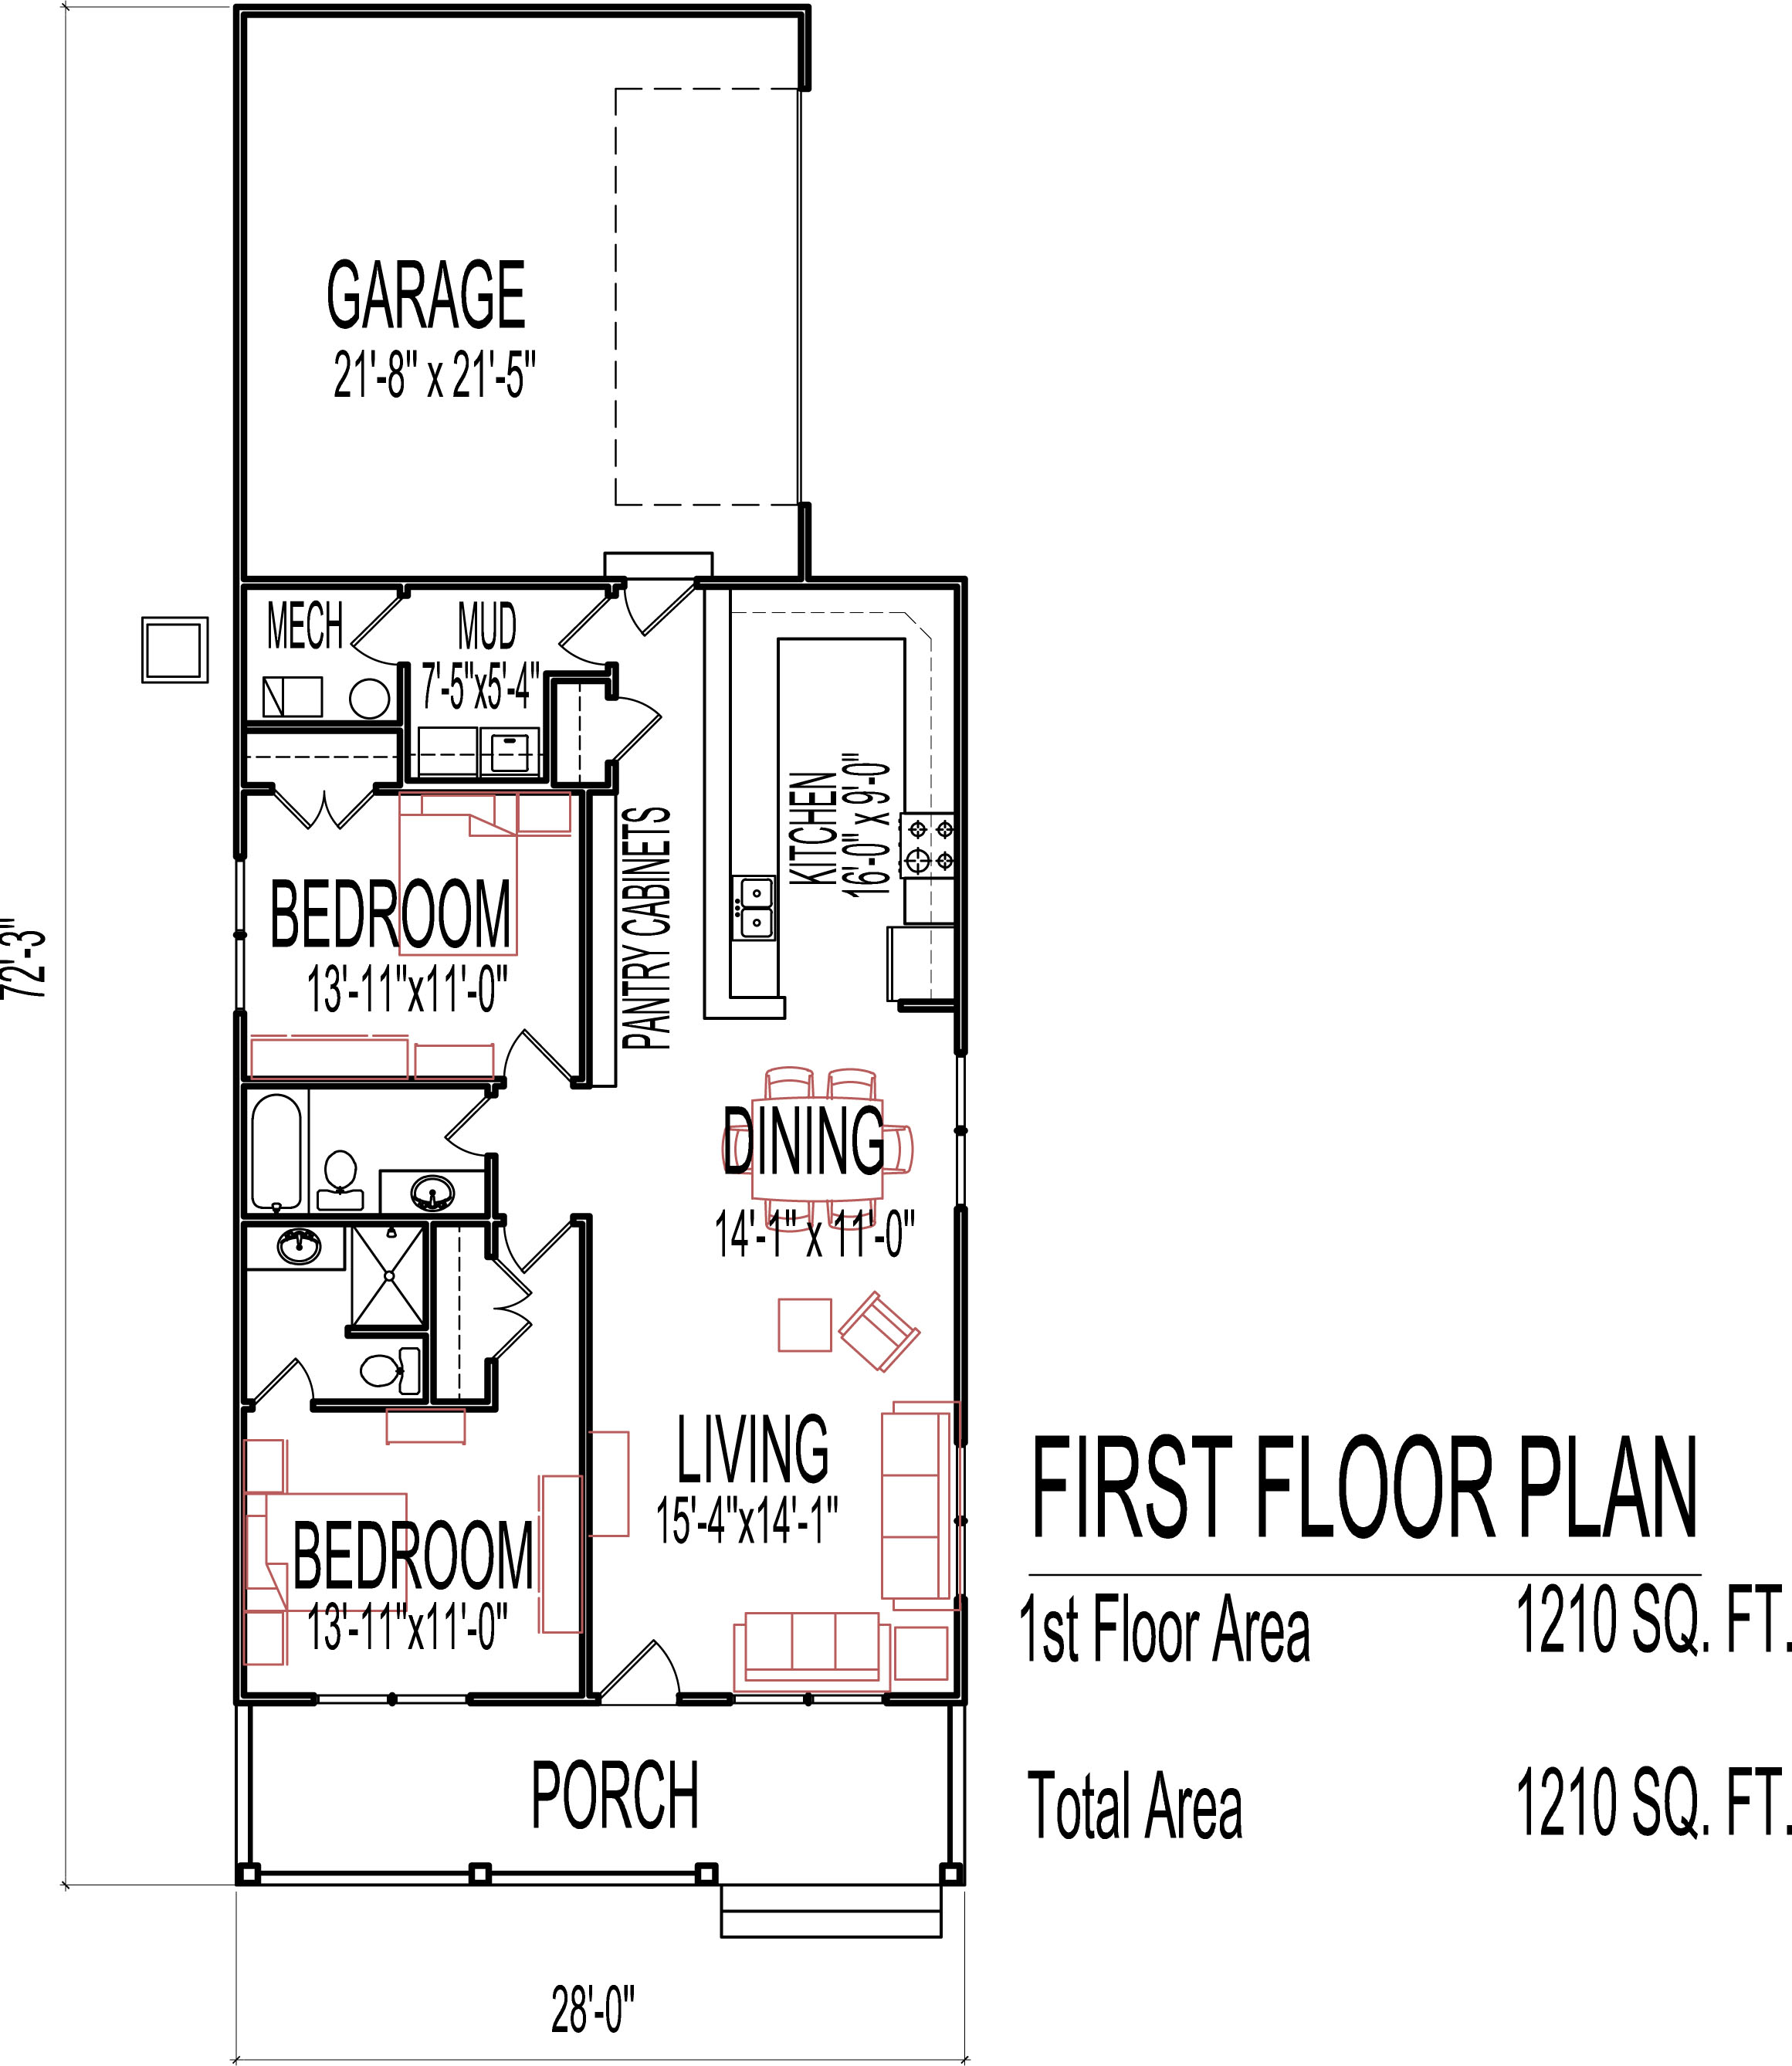 Small two bedroom house plans low cost 1200 sq ft one for 1 bed 1 bath house plans